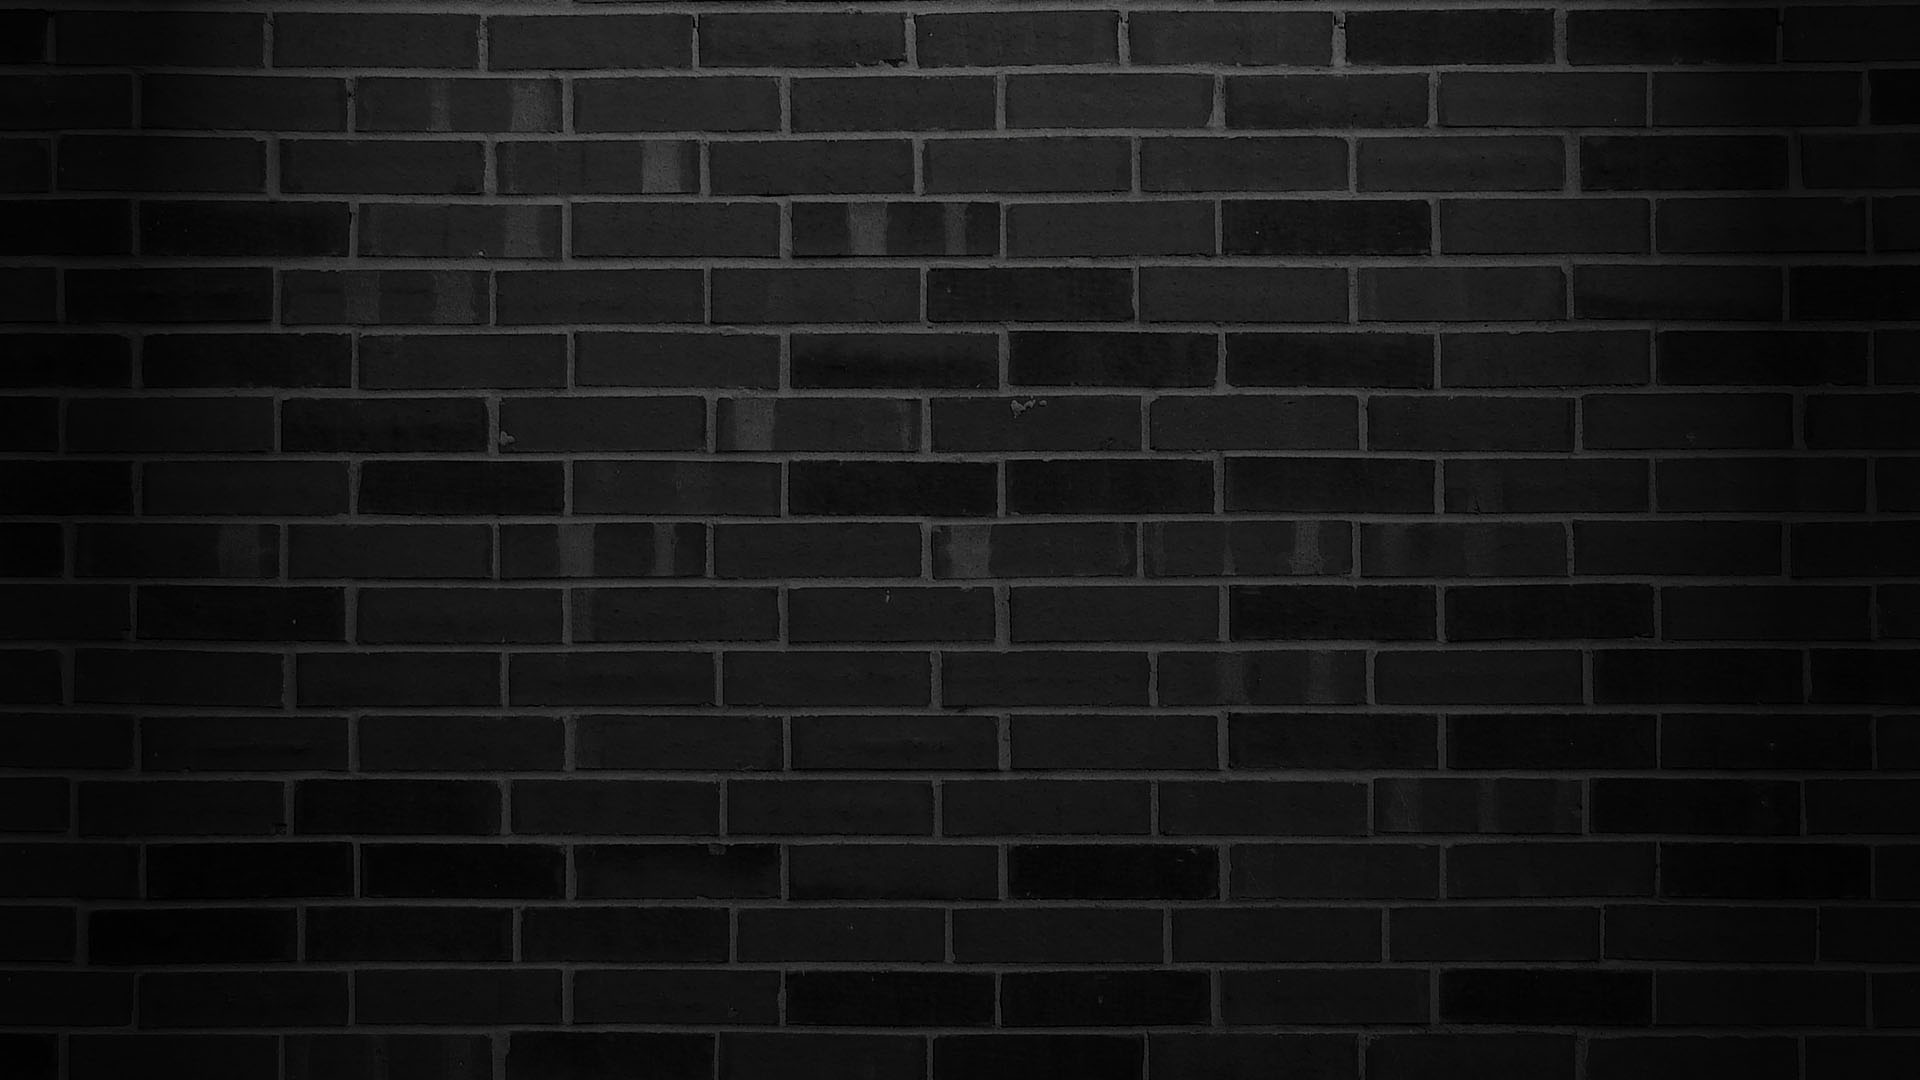 40 hd brick wallpapers backgrounds for free download for Black 3d brick wallpaper